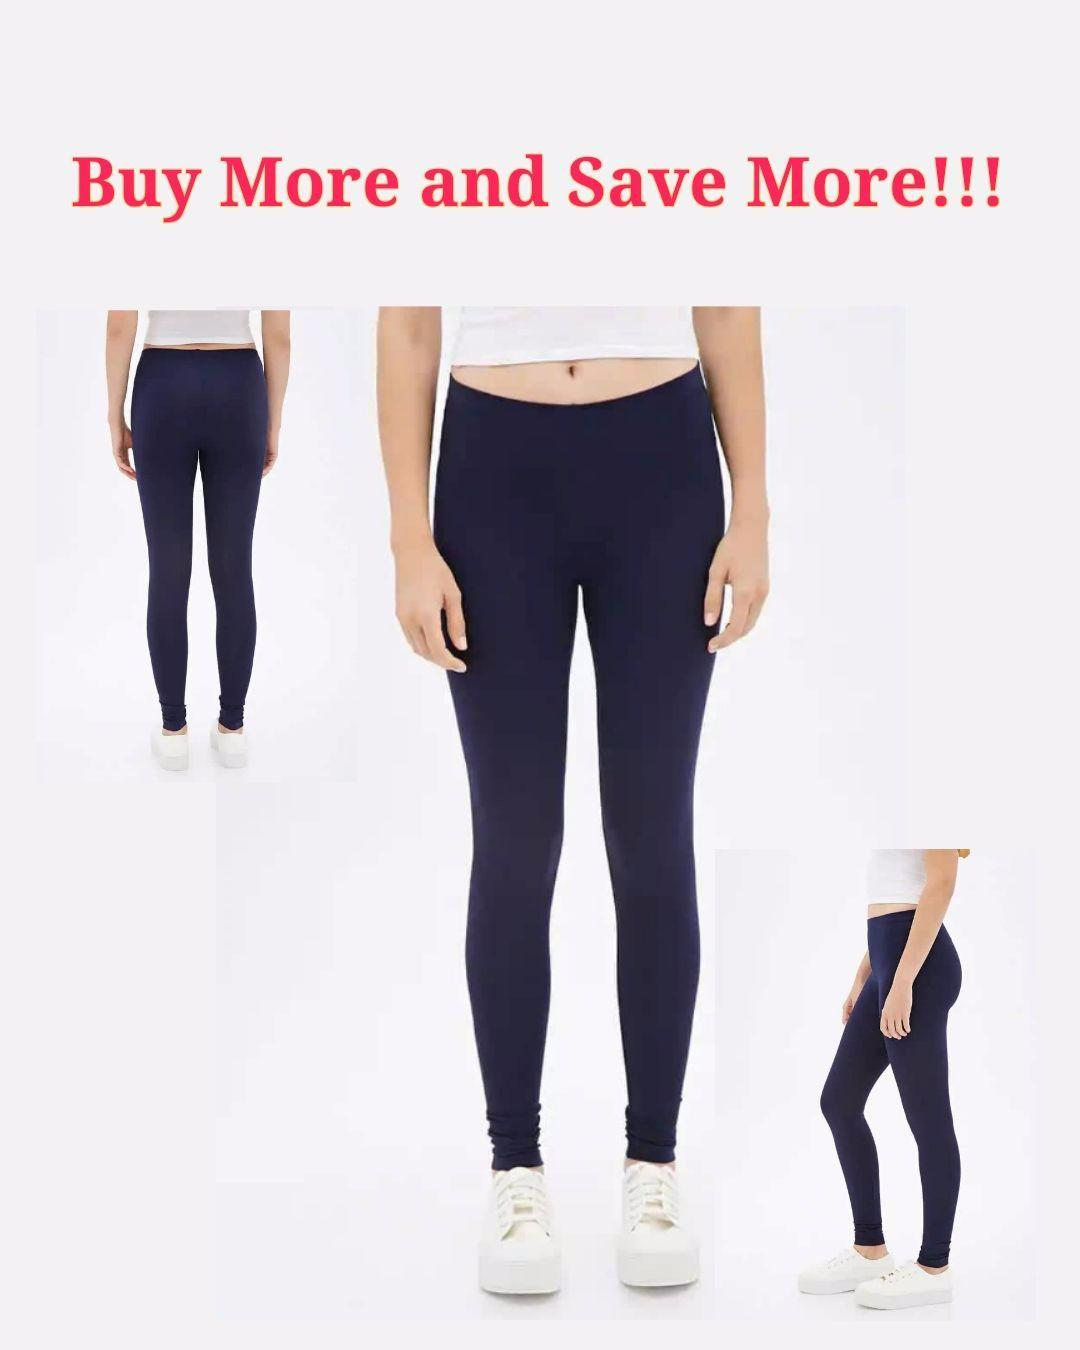 e1bc22afe Leggings for Women for sale - Womens Leggings Online Deals   Prices ...